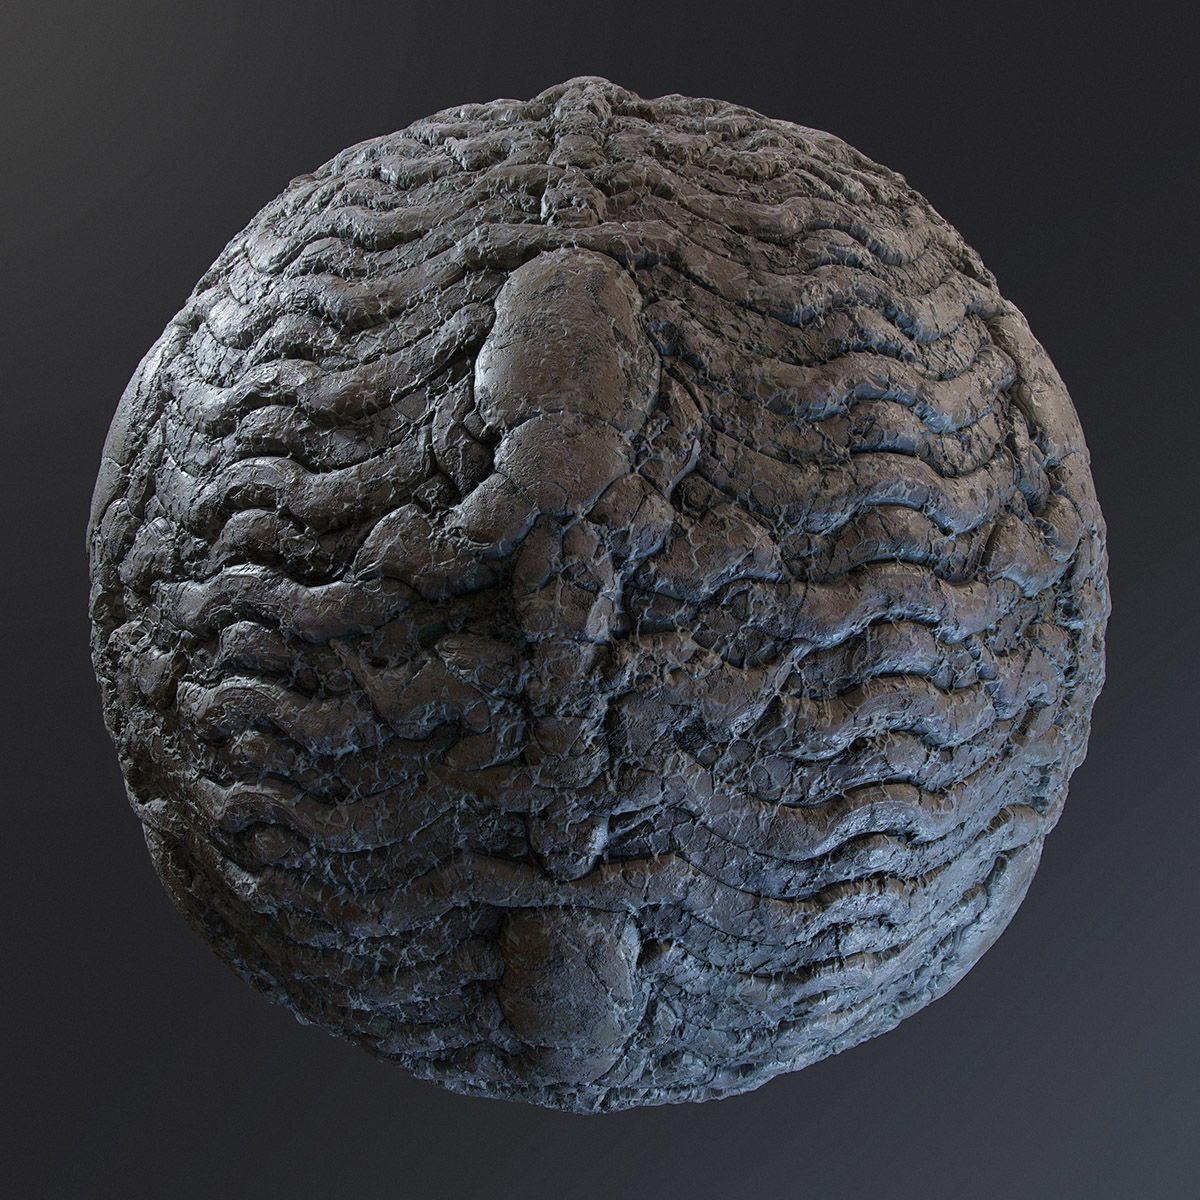 Substance Source Signature Material Release: Chris Hodgson